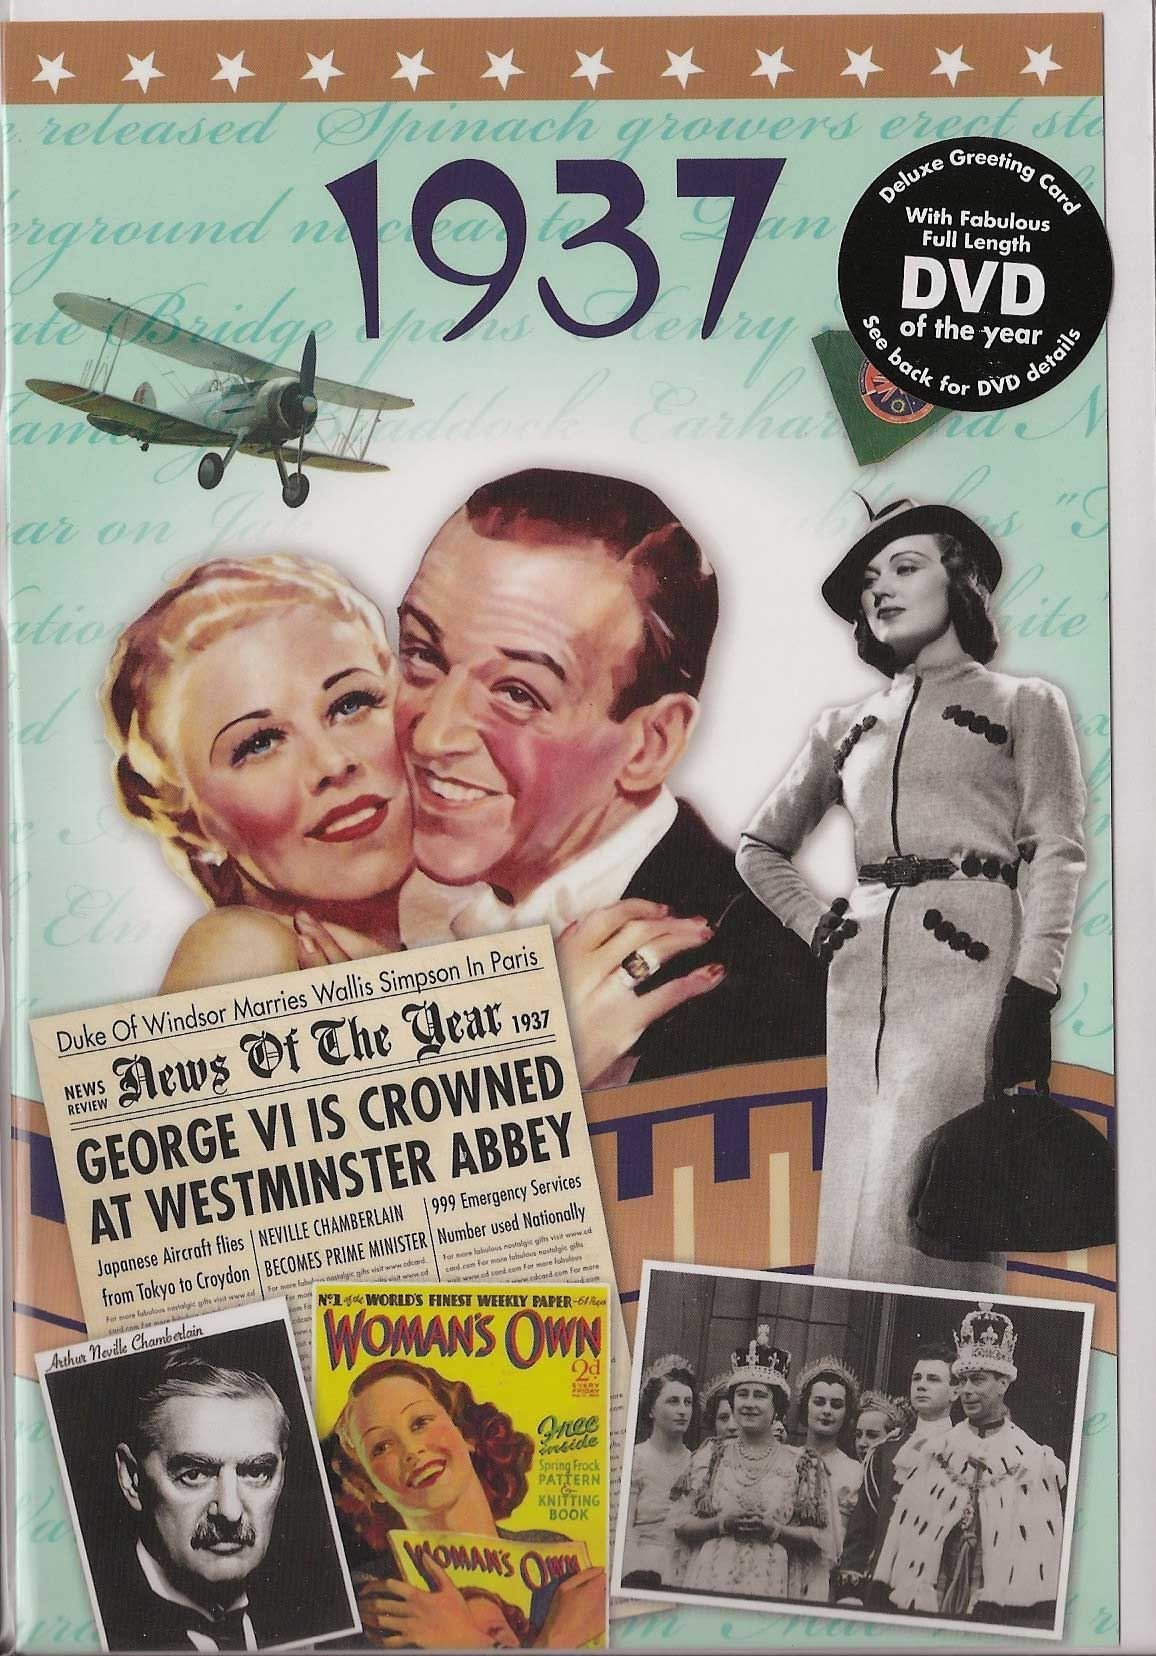 82nd Anniversary gift ~ DVD with Memories from 1937 and a Greeting Card in  one